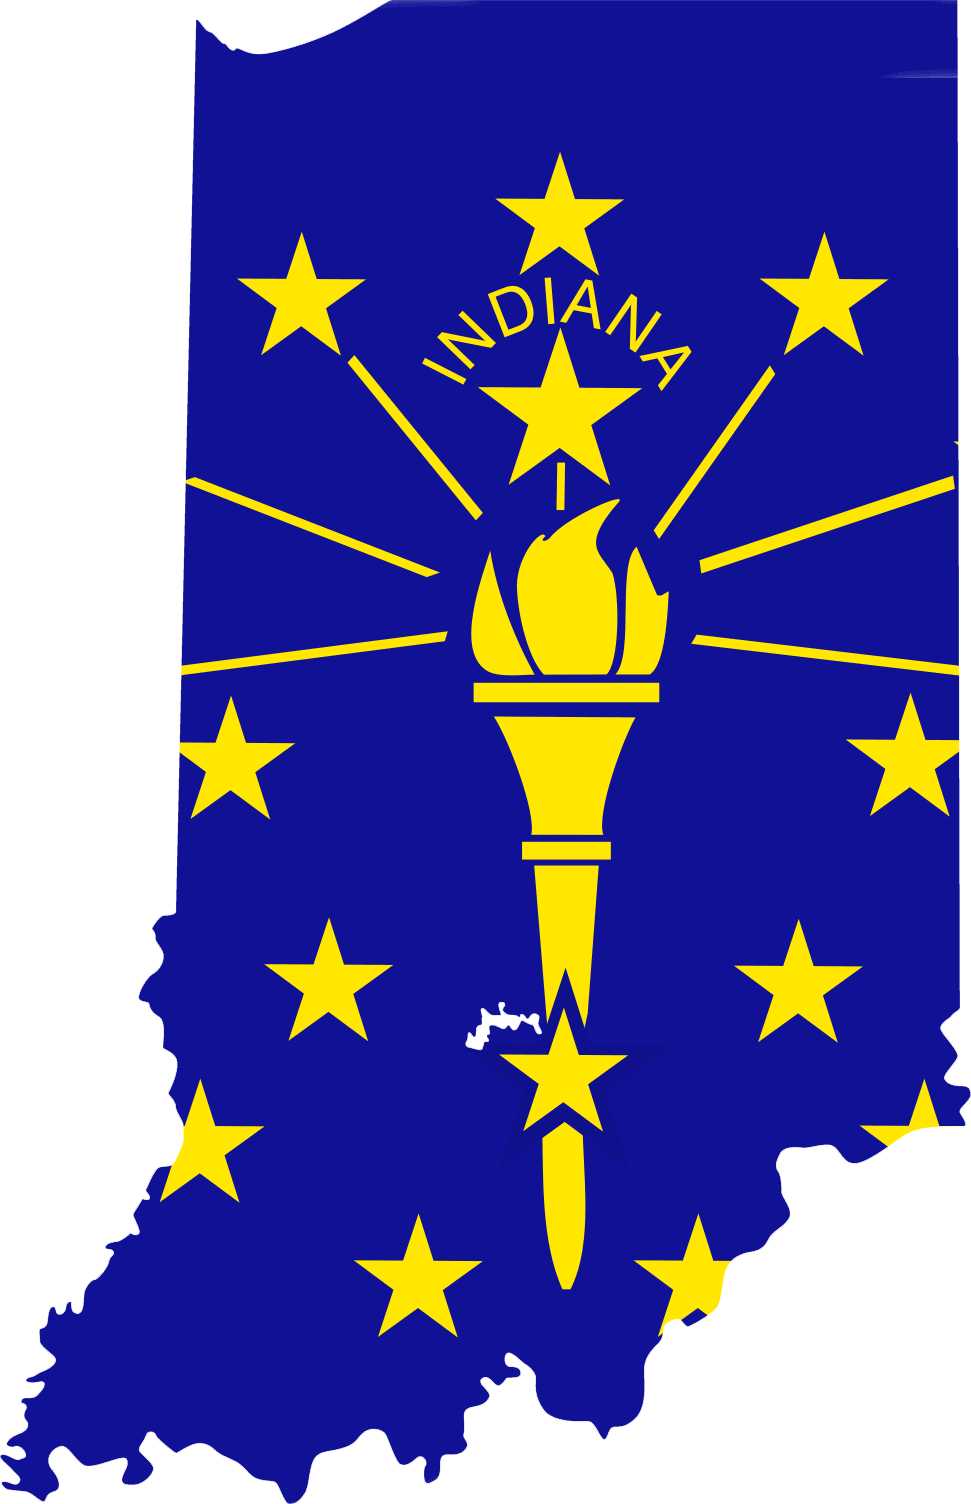 indiana most normal state in america according to business insider